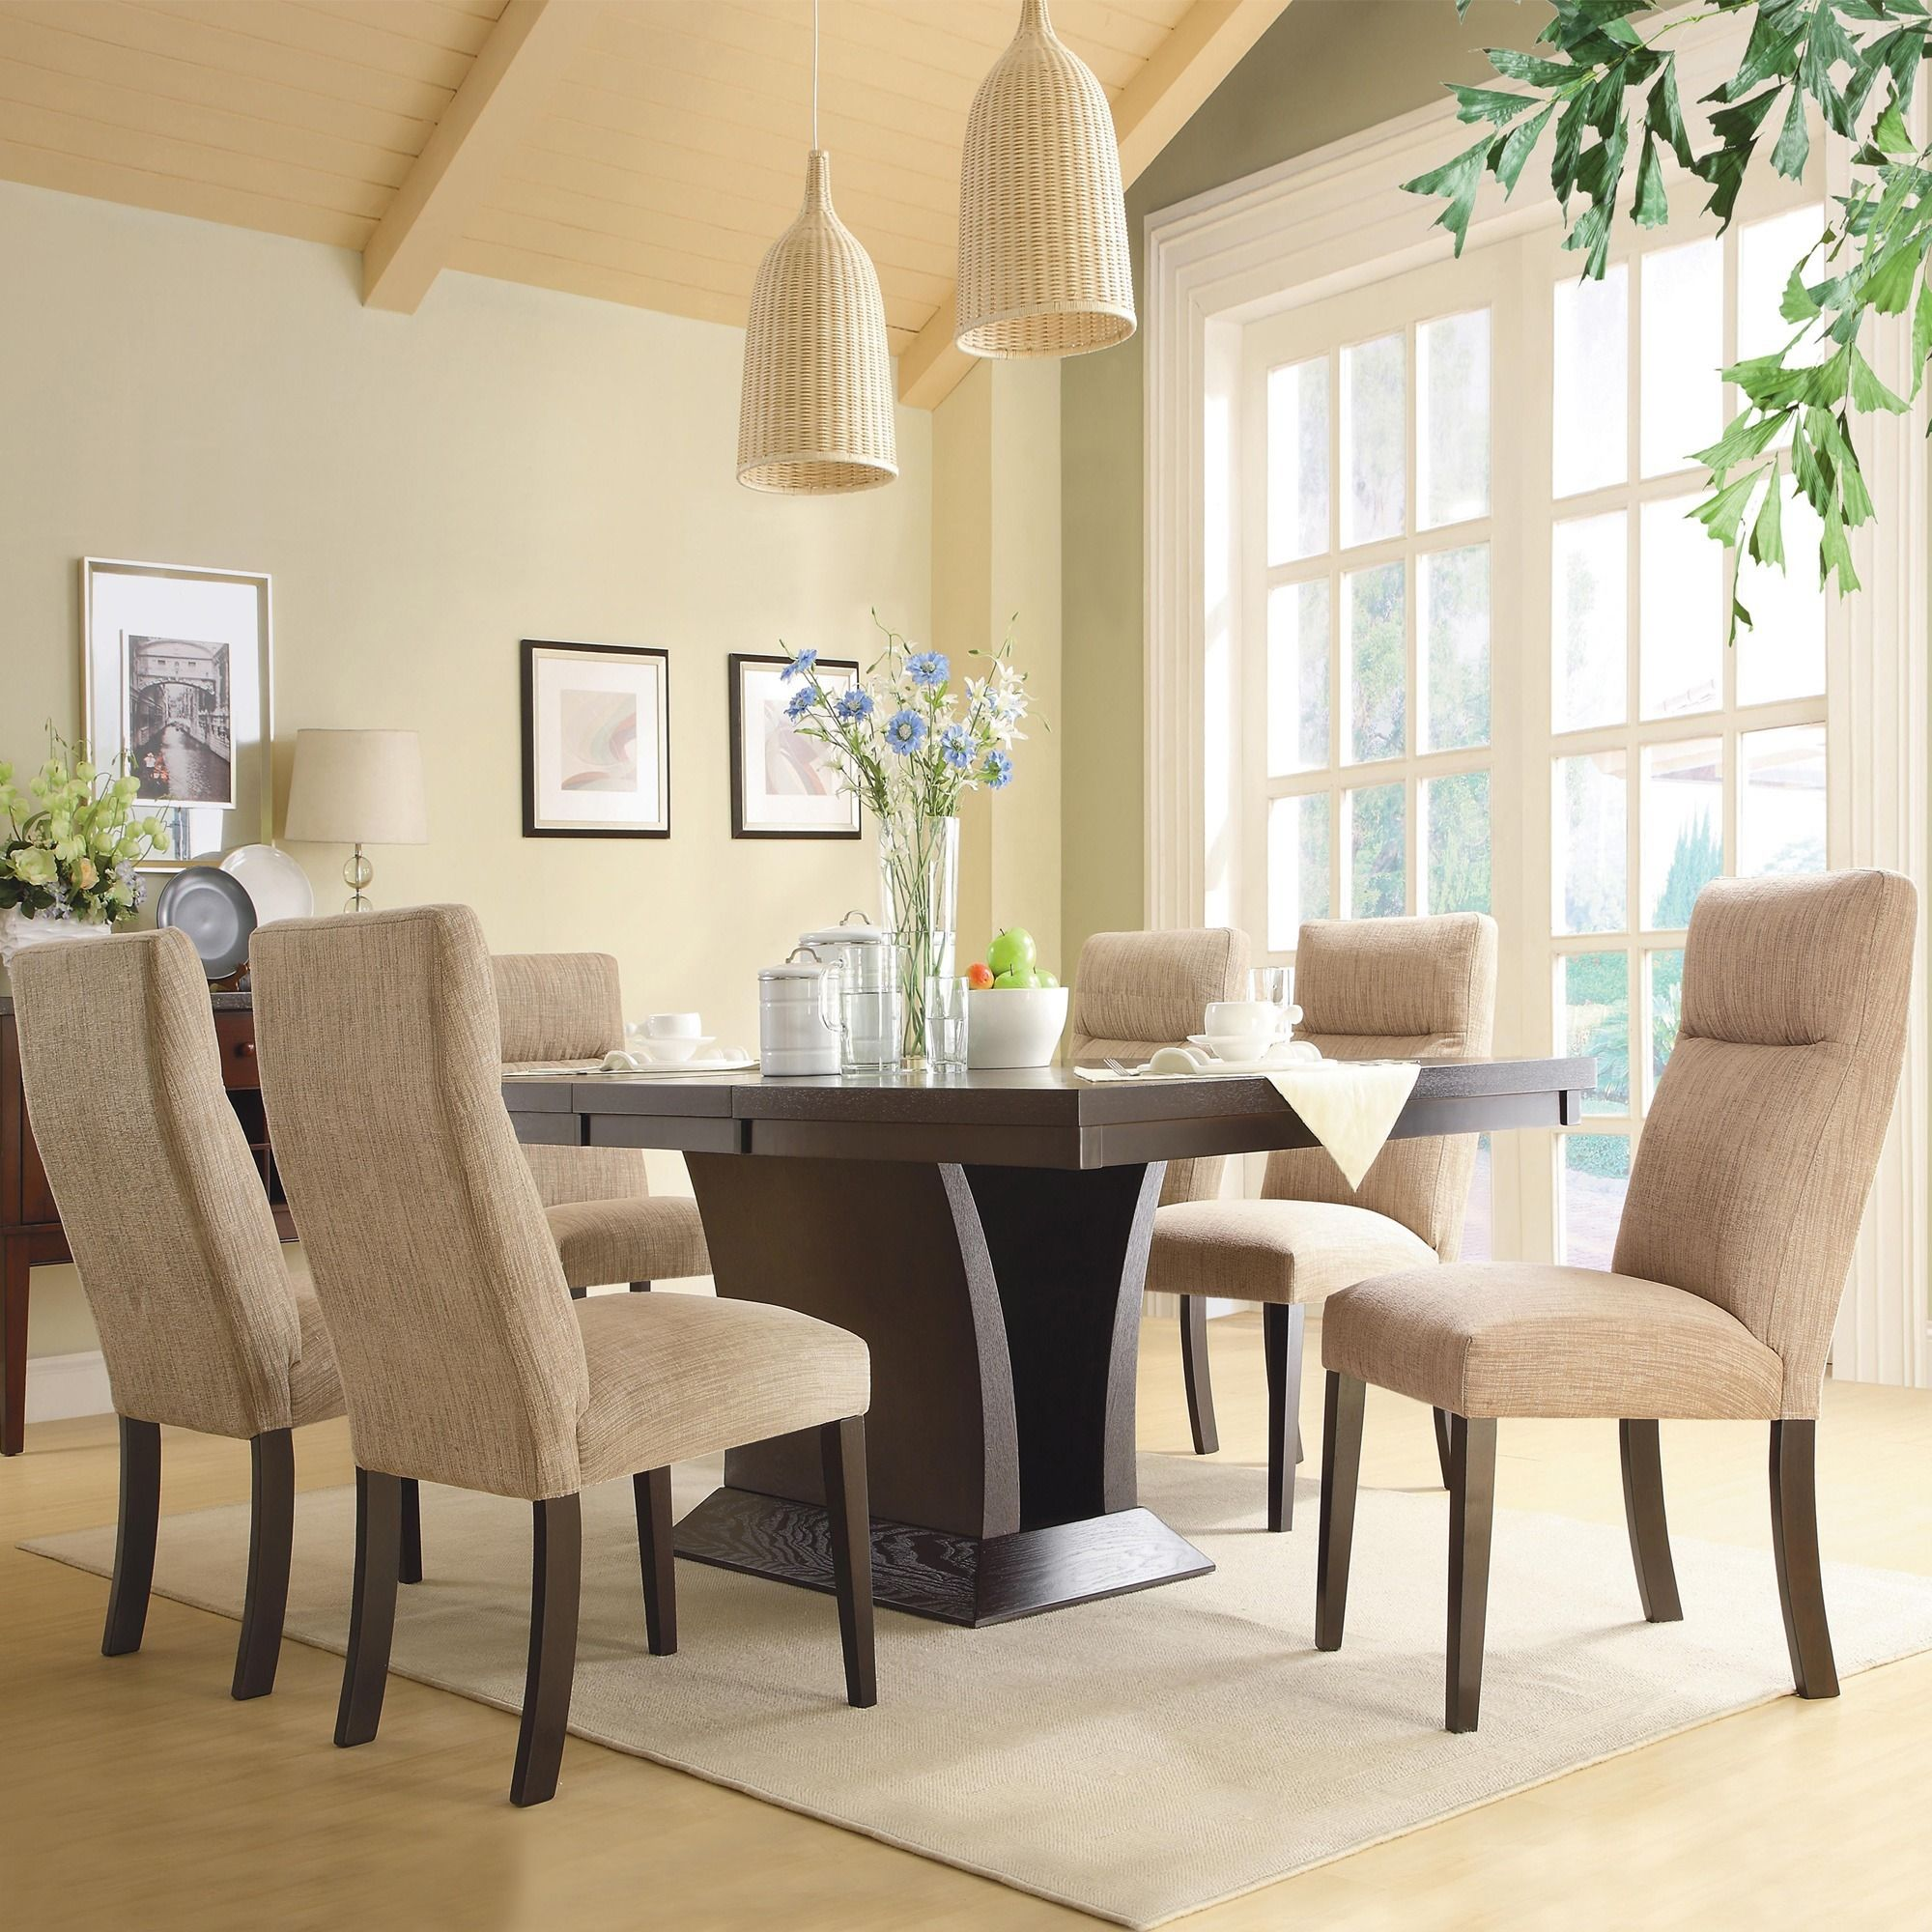 Modern Dining Room Sets: Charles Espresso Contemporary Dining Set By INSPIRE Q